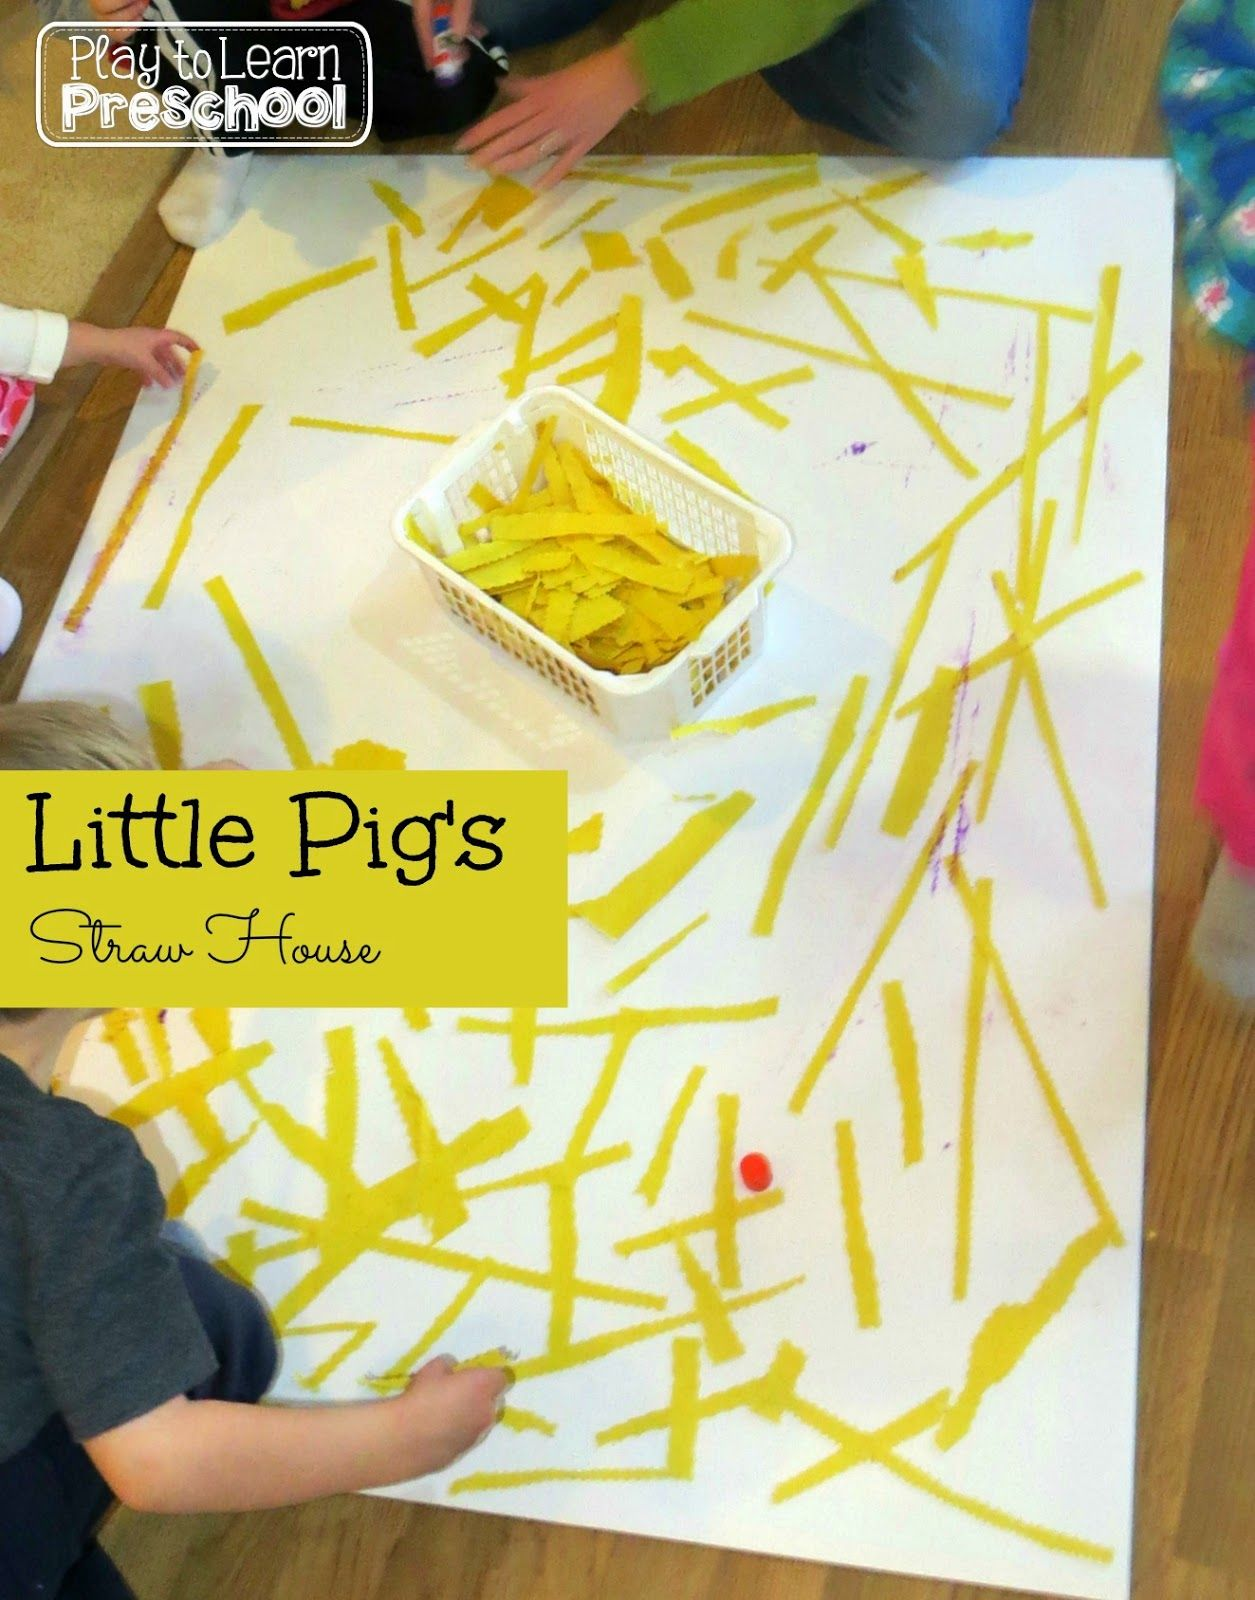 The Three Little Pigs Straw House